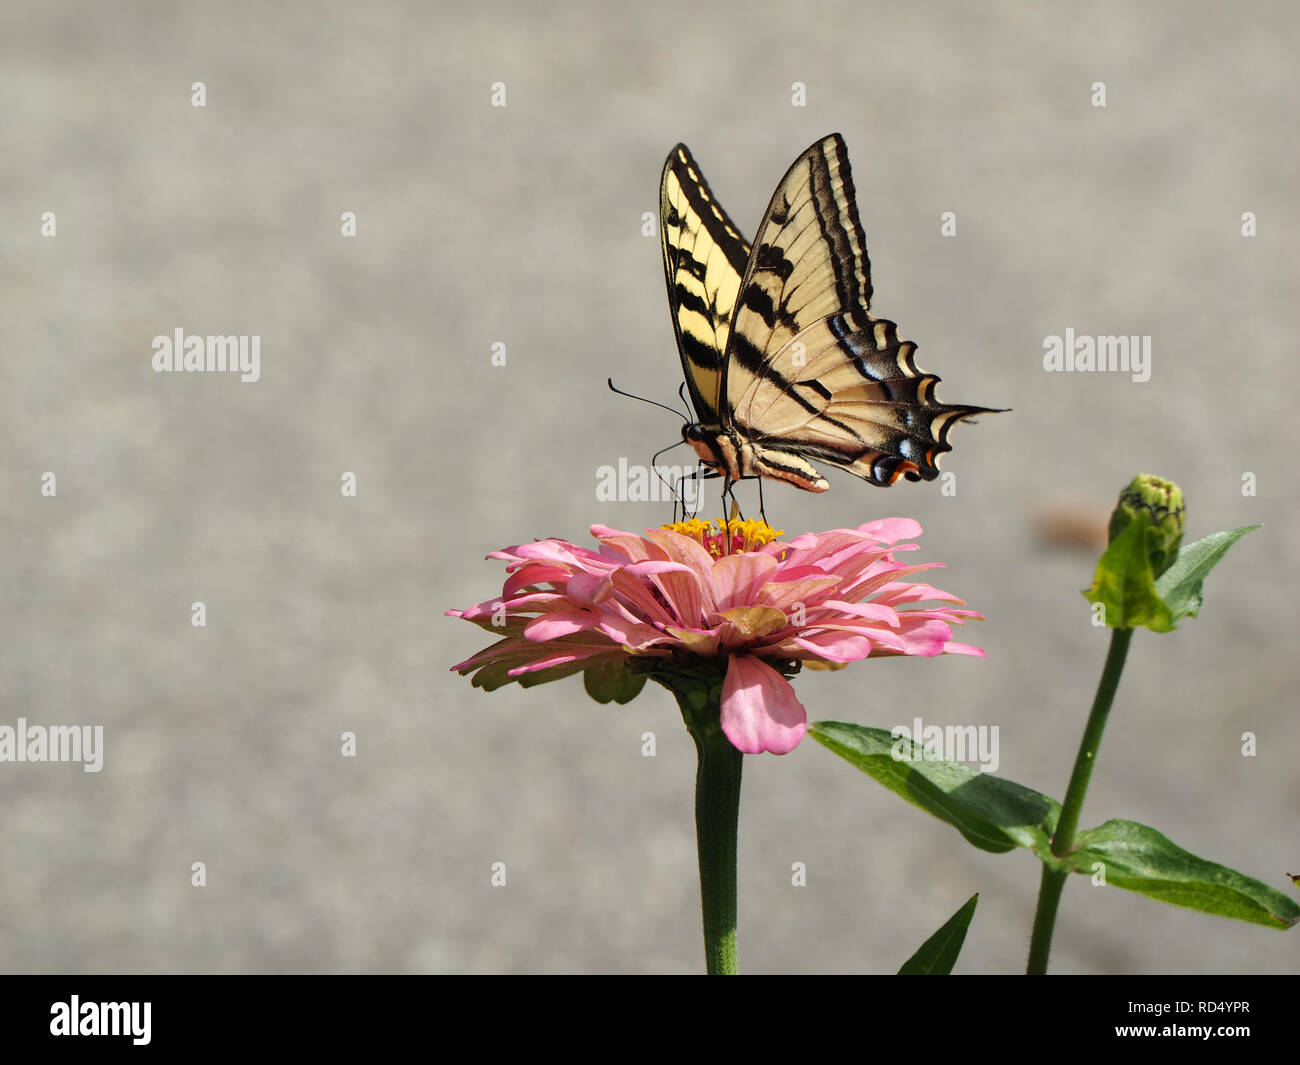 Pretty yellow and black swallowtail butterfly on a pink flower Stock Photo